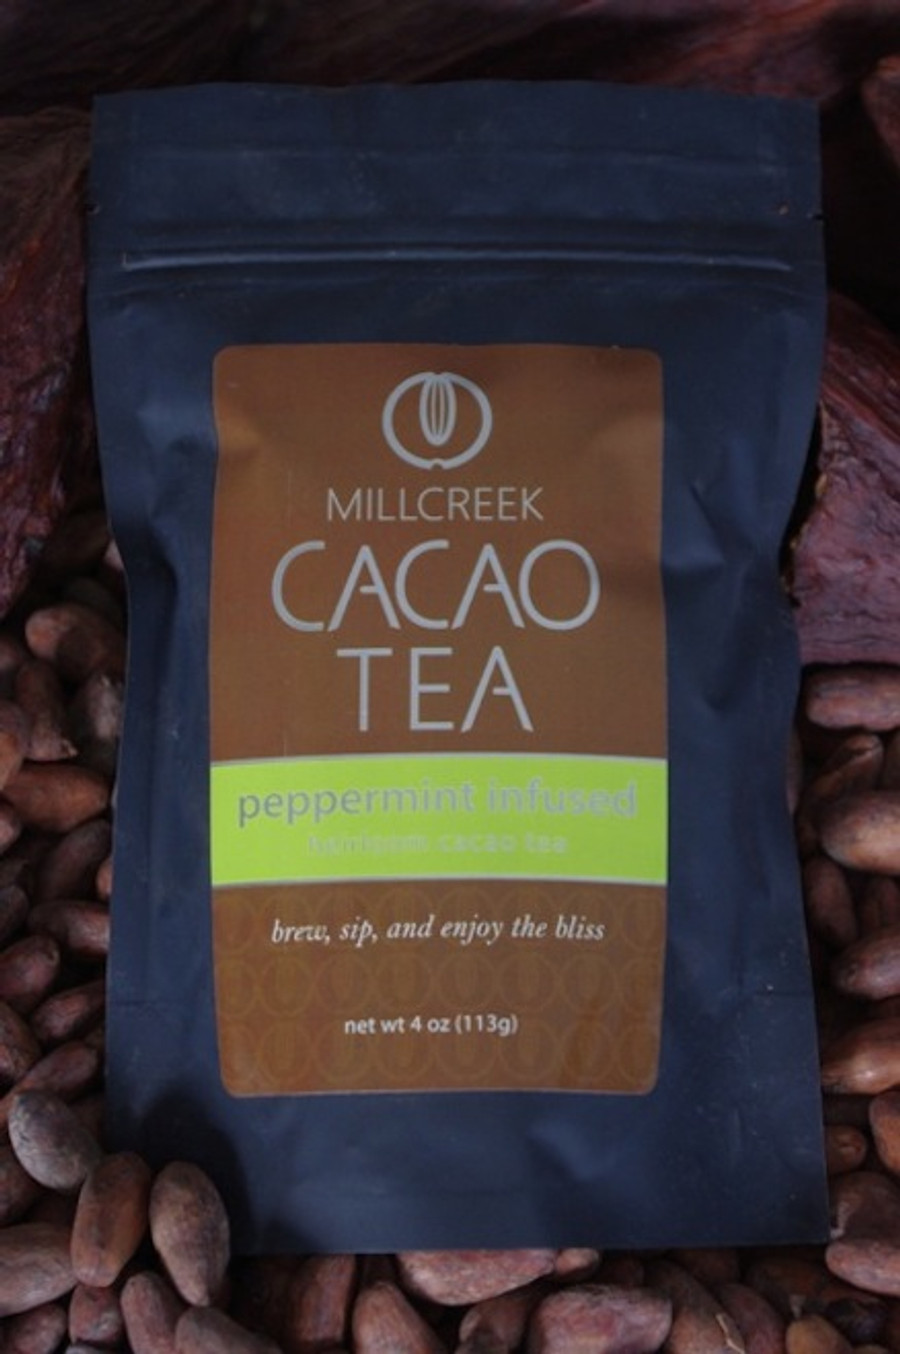 """Refreshing and crisp, this infusion of peppermint flavors is playful on the palette.  Invigorate the senses with all natural peppermint flavors combined with a unique blend of roasted cacao nibs and theobromine-rich shell. The chocolate undertones play jubilantly with the peppermint sensations to create a delicious pairing in this Heirloom Cacao Tea. Made from the same 100% single source Ecuadorian cacao beans used in our artisan chocolate, this tea has a delicate cacao flavor with beautiful aromas.  Using our knowledge as farm to bar chocolate makers, we have crafted a delicate cacao tea using our rare, heirloom Arriba Nacional beans. Imported directly from our farmer in the Los Rios region of Ecuador, this exotic and rare bean is roasted to release the beautiful flavors within. This Heirloom Cacao Tea uses both roasted nibs and theobromine-rich shells to create a delicate tea with lovely chocolate nuances.  Cacao Benefits:  Rich in antioxidants, amino acids, and magnesium Cacao contains Theobromine, said to give a euphoric feeling Cacao contains Anandamide, an endorphin, whose name appropriately translates as """"bliss"""" Brew, sip and enjoy the bliss"""